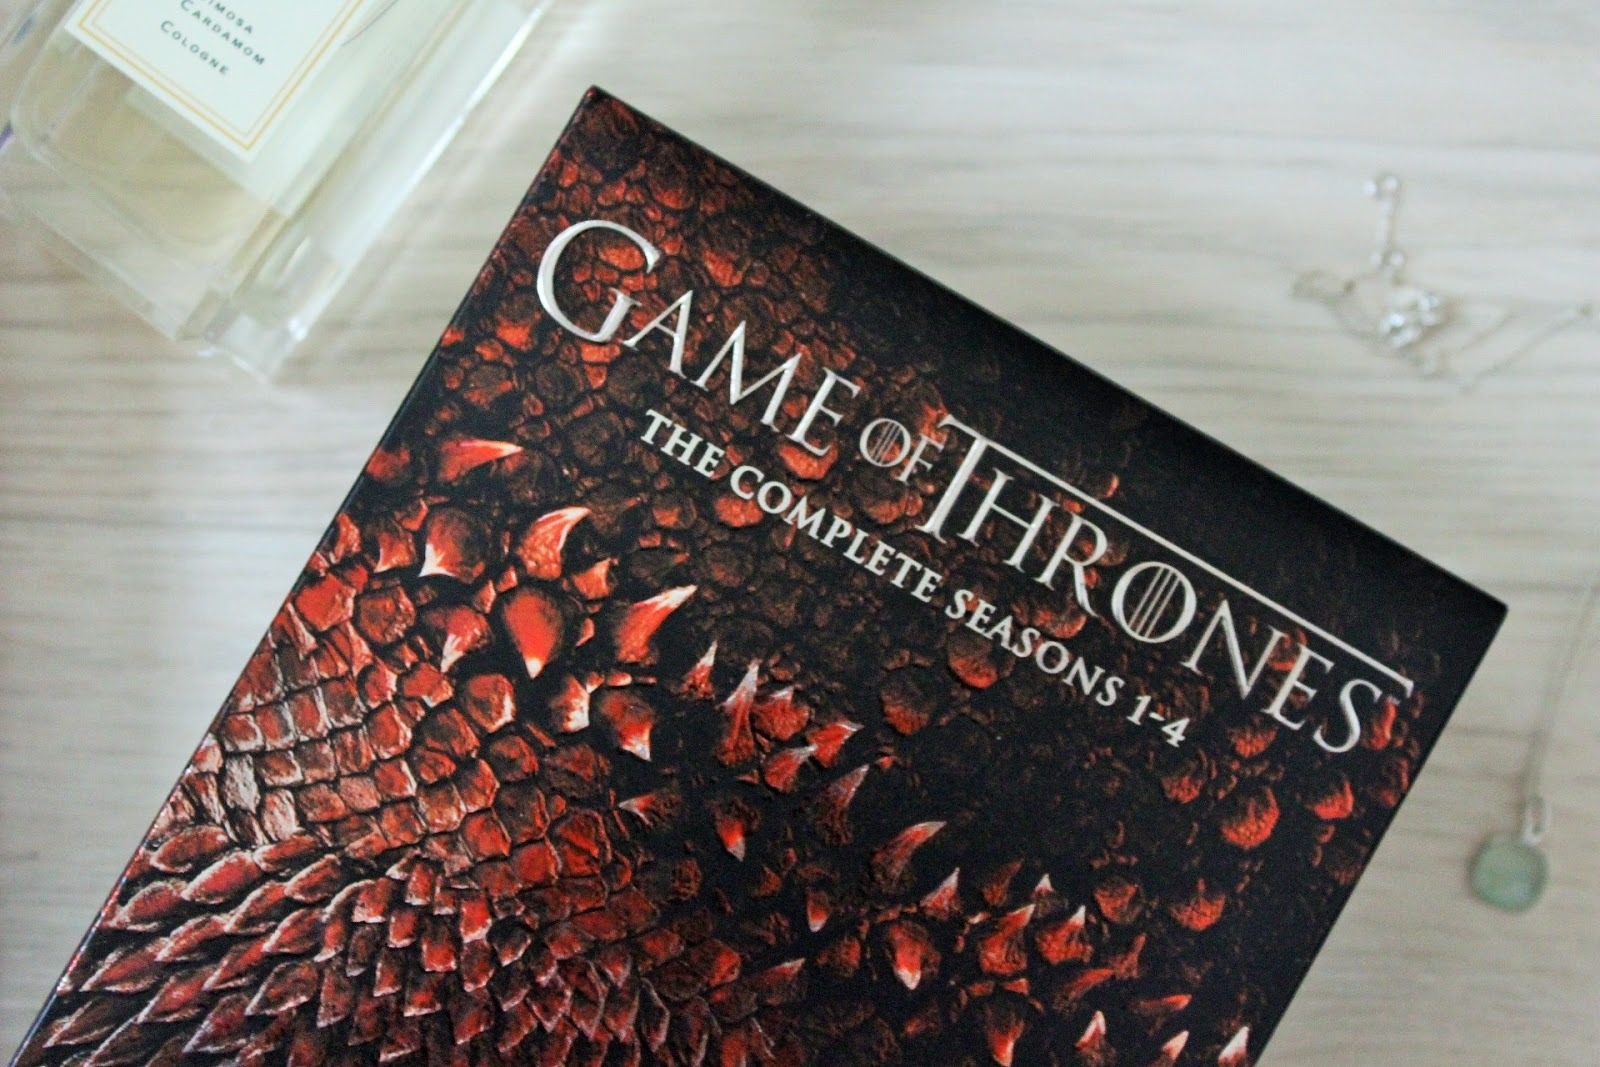 Game of Thrones Box Set - Seasons 1-4